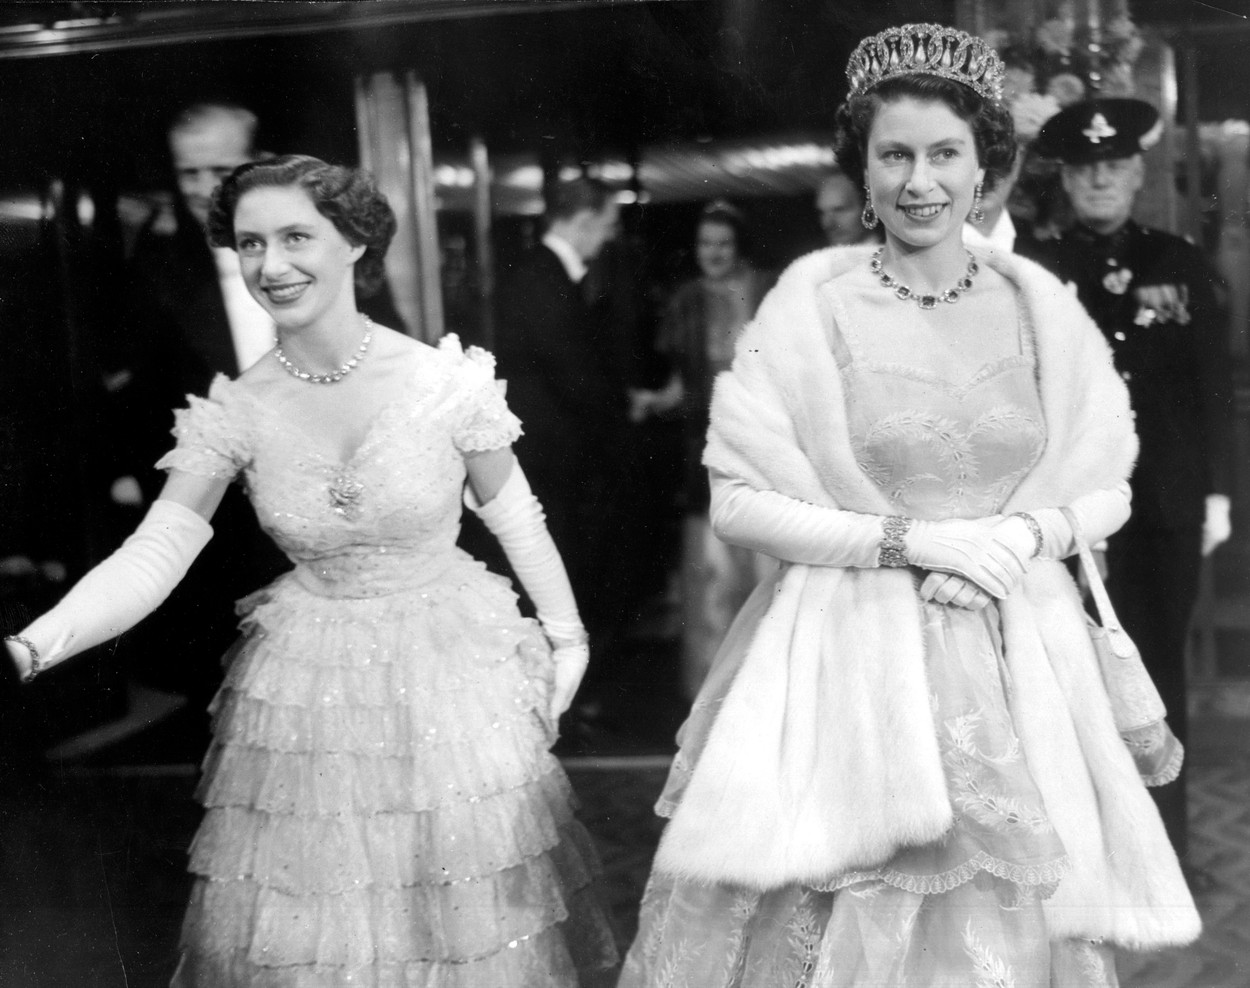 Oct 26, 1953 - London, England, UK - The elder daughter of King George VI and Queen Elizabeth, ELIZABETH WINDSOR (named Elizabeth II) became Queen at the age of 25, and has reigned through more than five decades of enormous social change and development. For more than 50 years, during a period of great social change, The Queen has carried out her political duties as Head of State, the ceremonial responsibilities of the Sovereign and an unprecedented programme of visits in the United Kingdom, Commonwealth and overseas. PICTURED: QUEEN ELIZABETH II with her sister PRINCESS MARGARET., Image: 210131630, License: Rights-managed, Restrictions: , Model Release: no, Credit line: KEYSTONE Pictures USA / Zuma Press / Profimedia